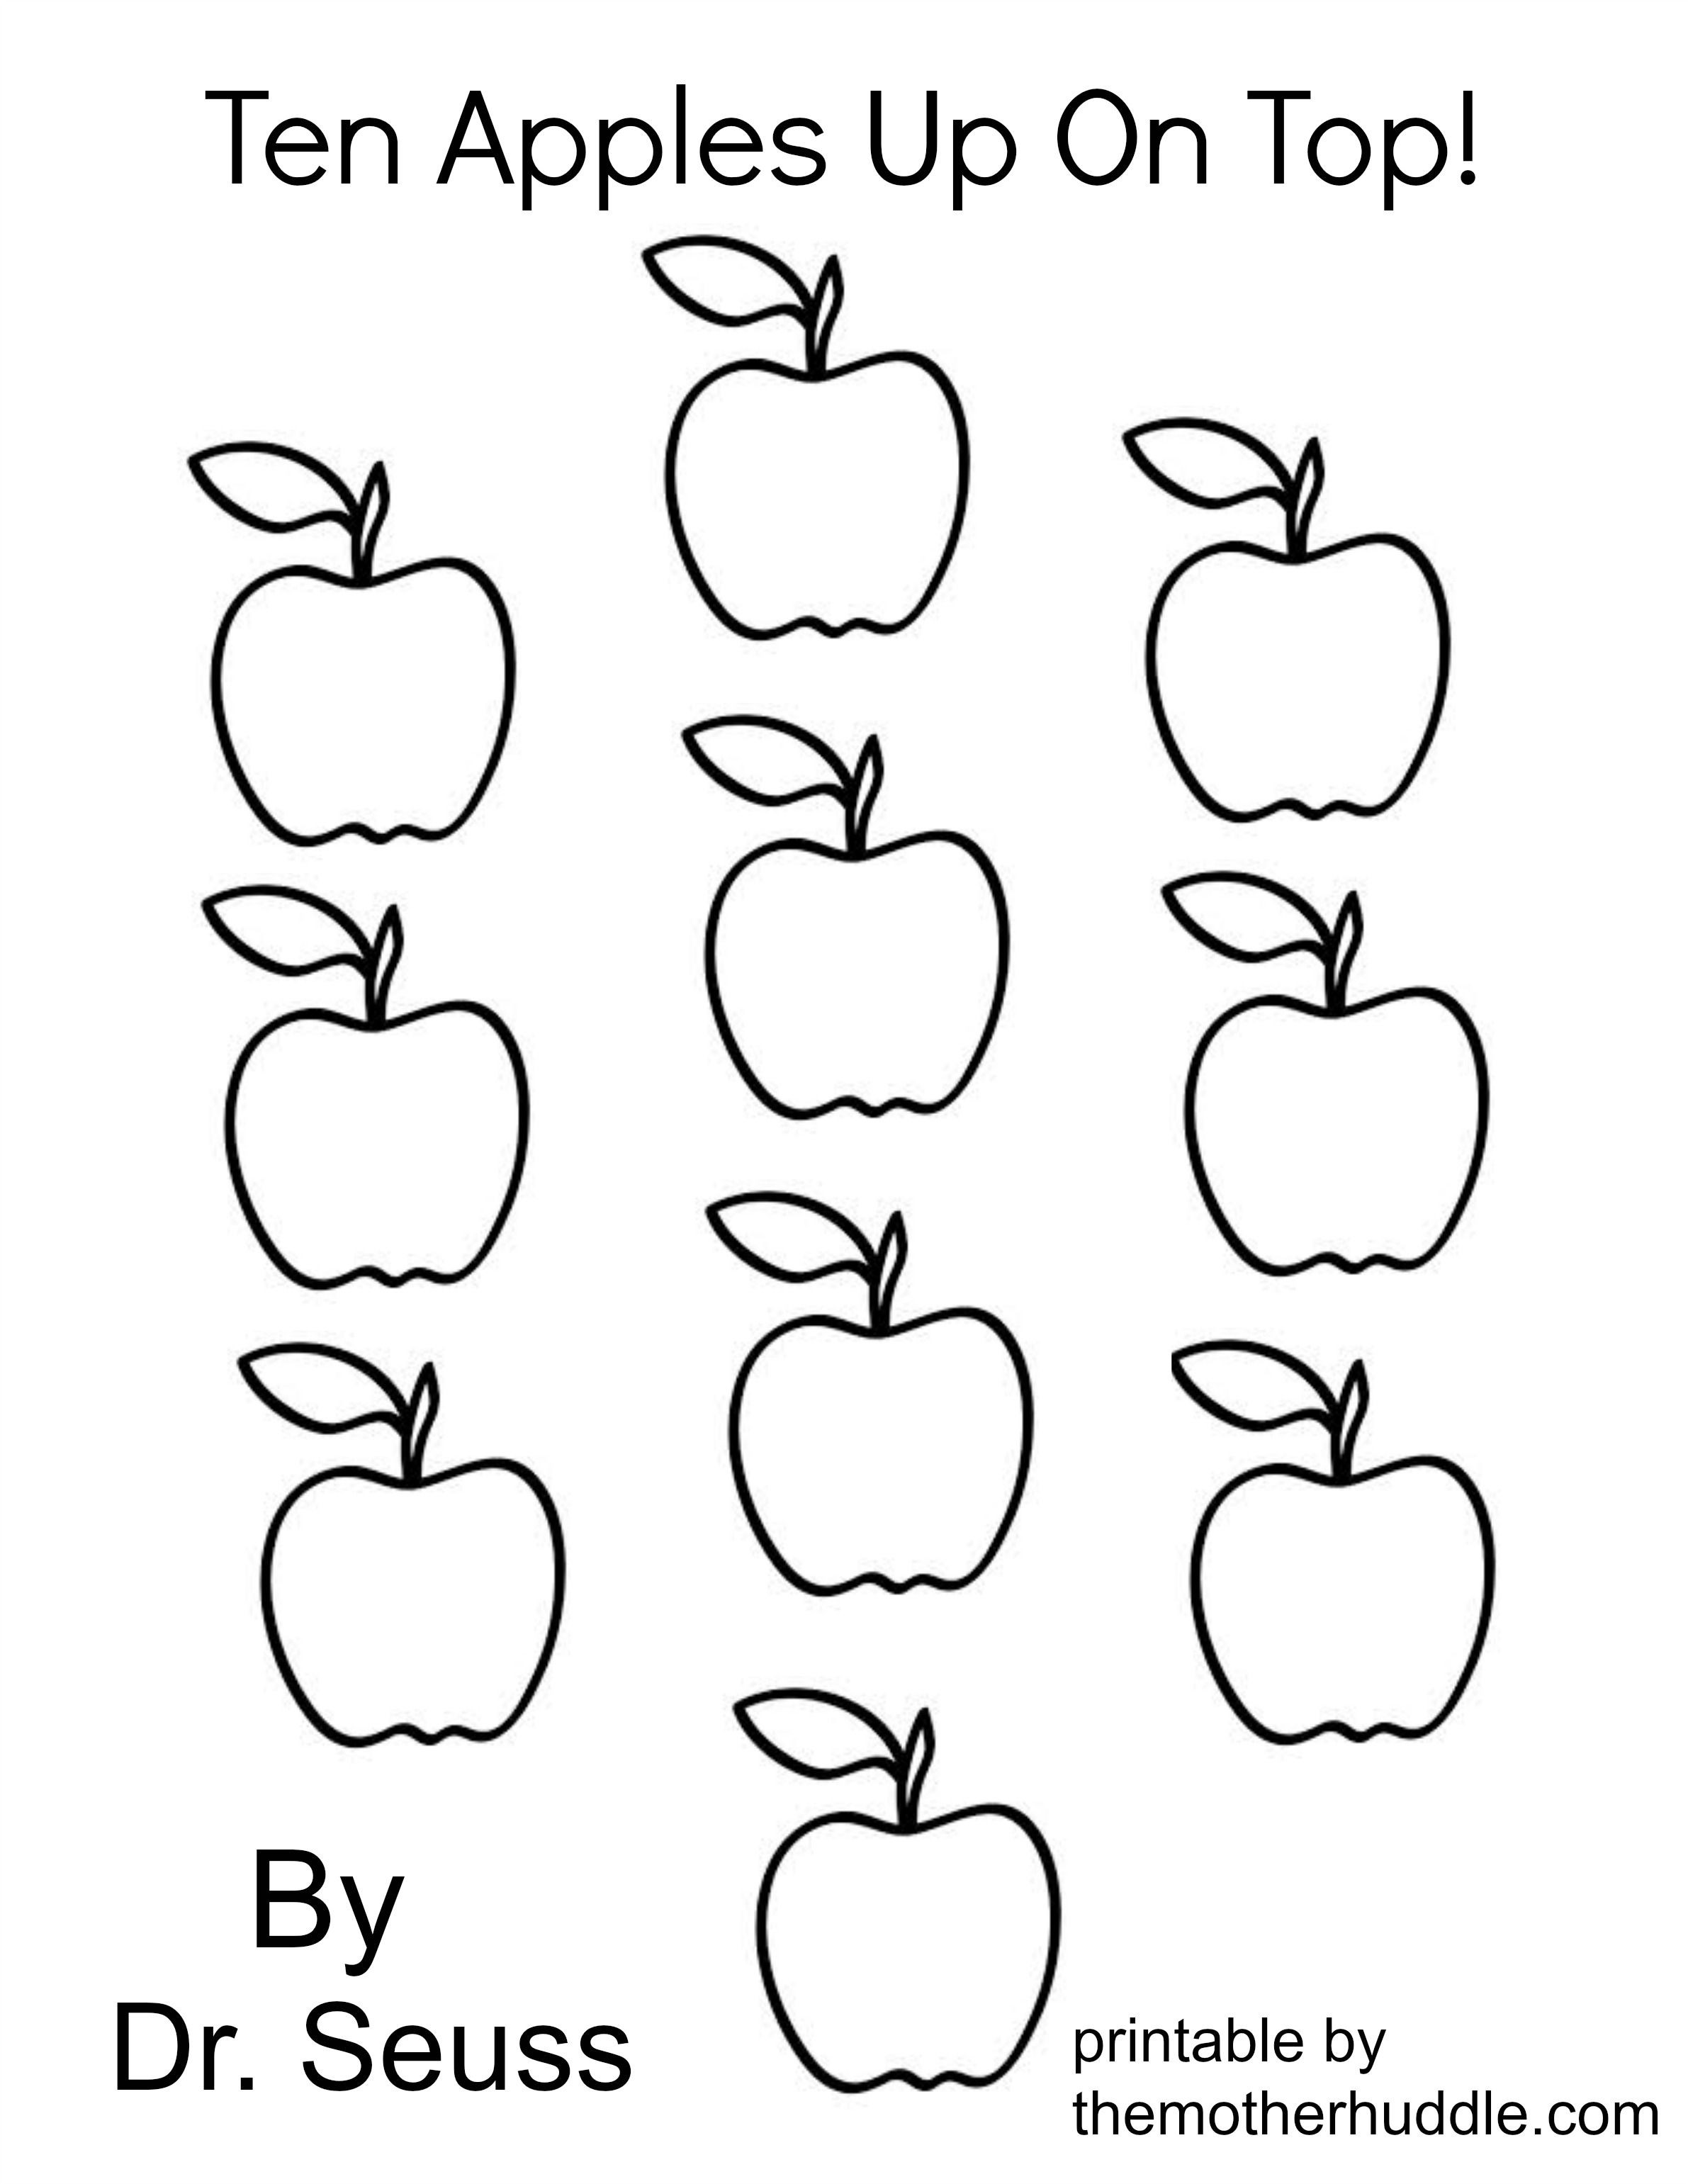 2382x3082 Custard Apple Fruits Coloring Pages For Kids Unique Ten Apples Up